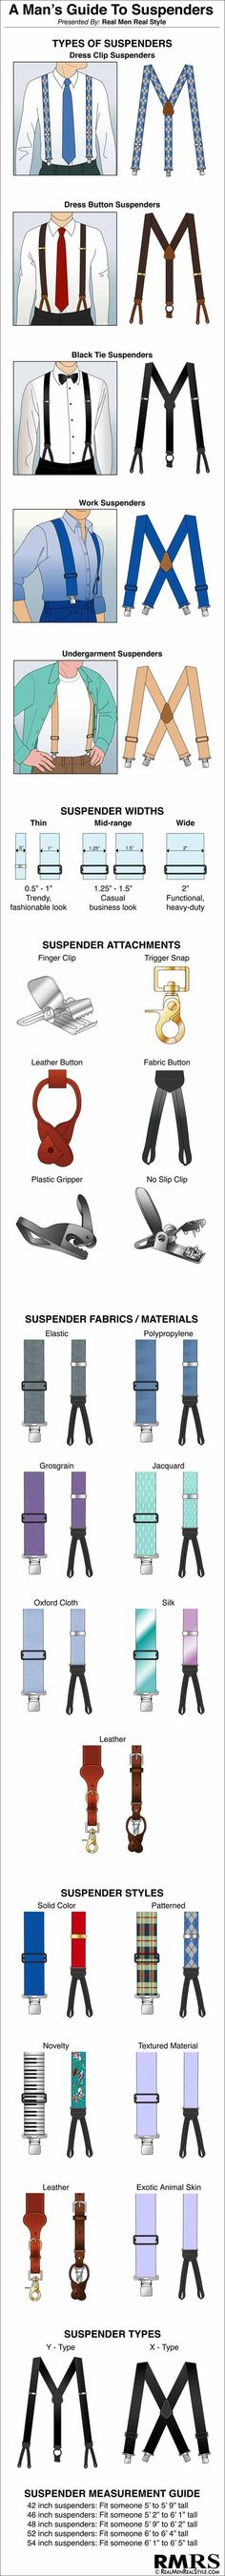 A Man's Guide To Suspenders | Trouser Braces Infographic | Suspender Guide (via @antoniocenteno):